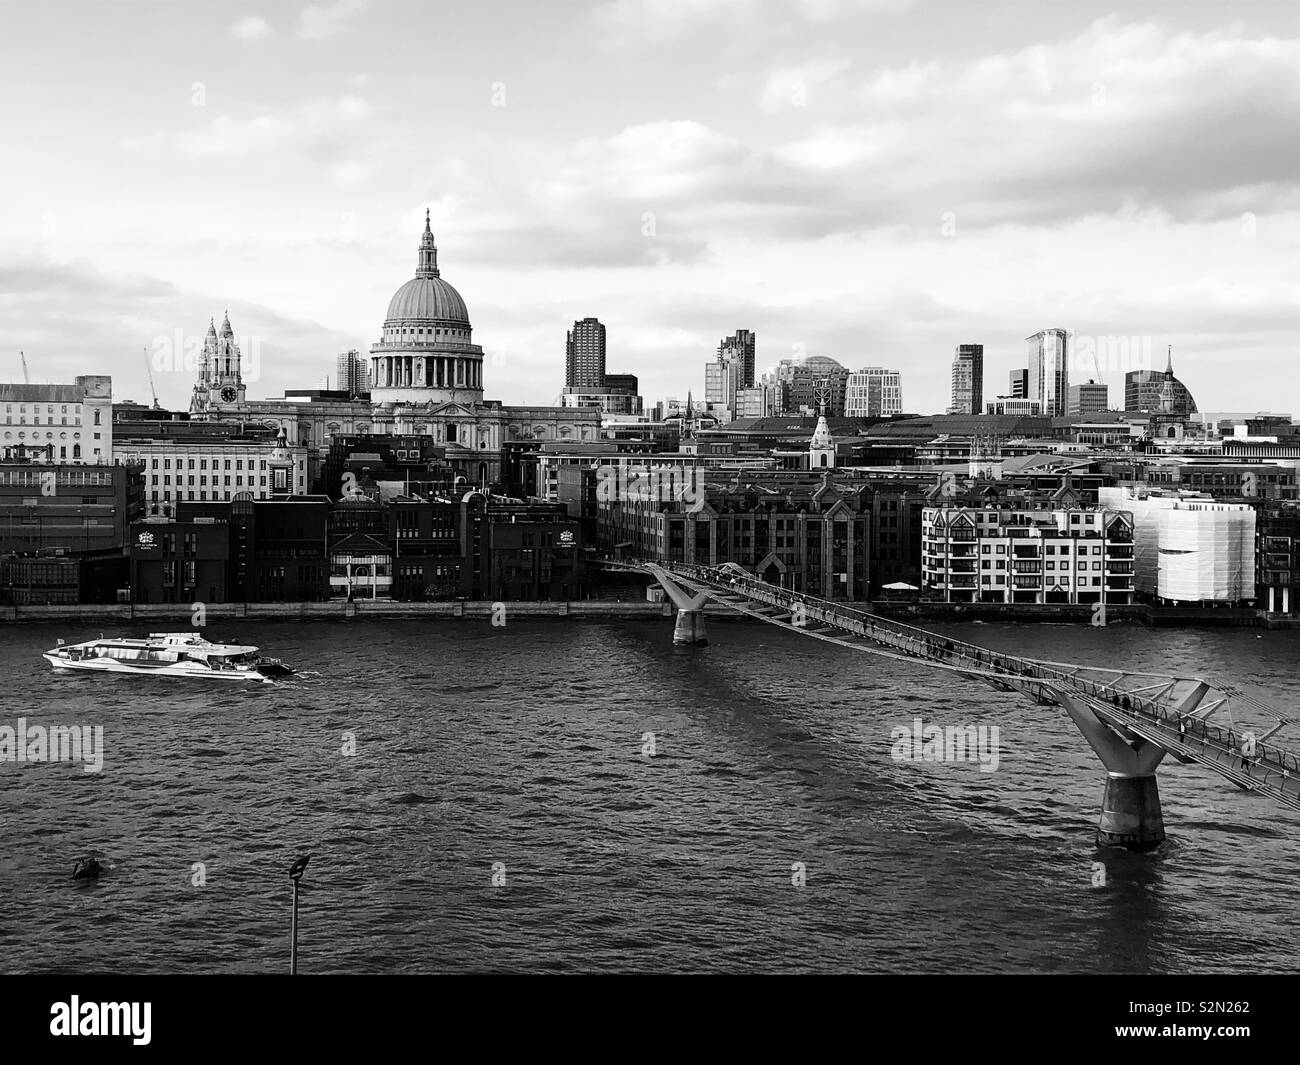 St Paul's and the Thames Black and White - Stock Image